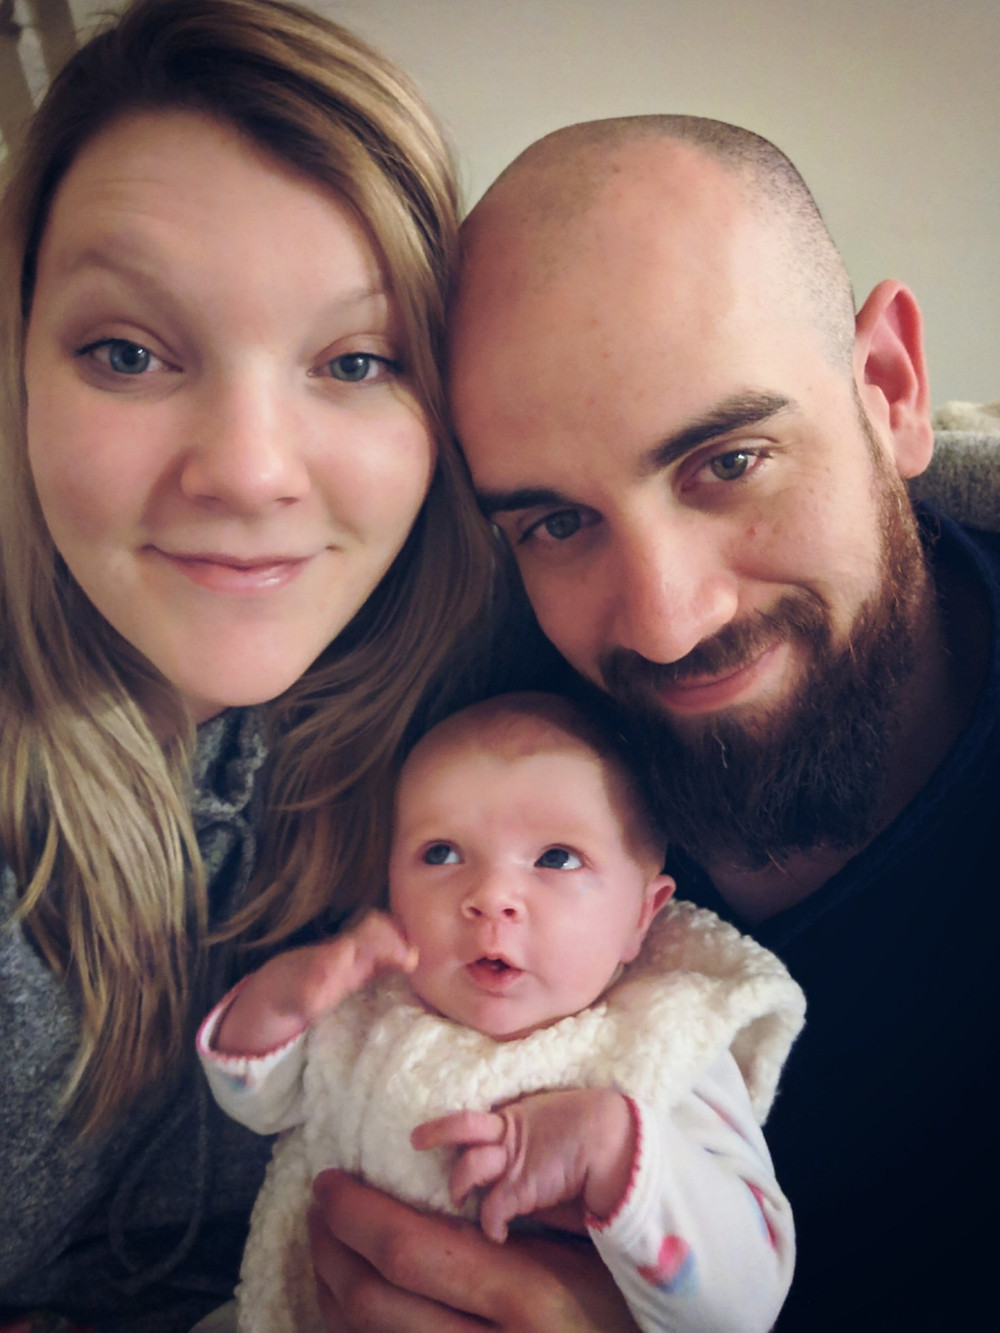 YBH Trained couple celebrates the birth of first child